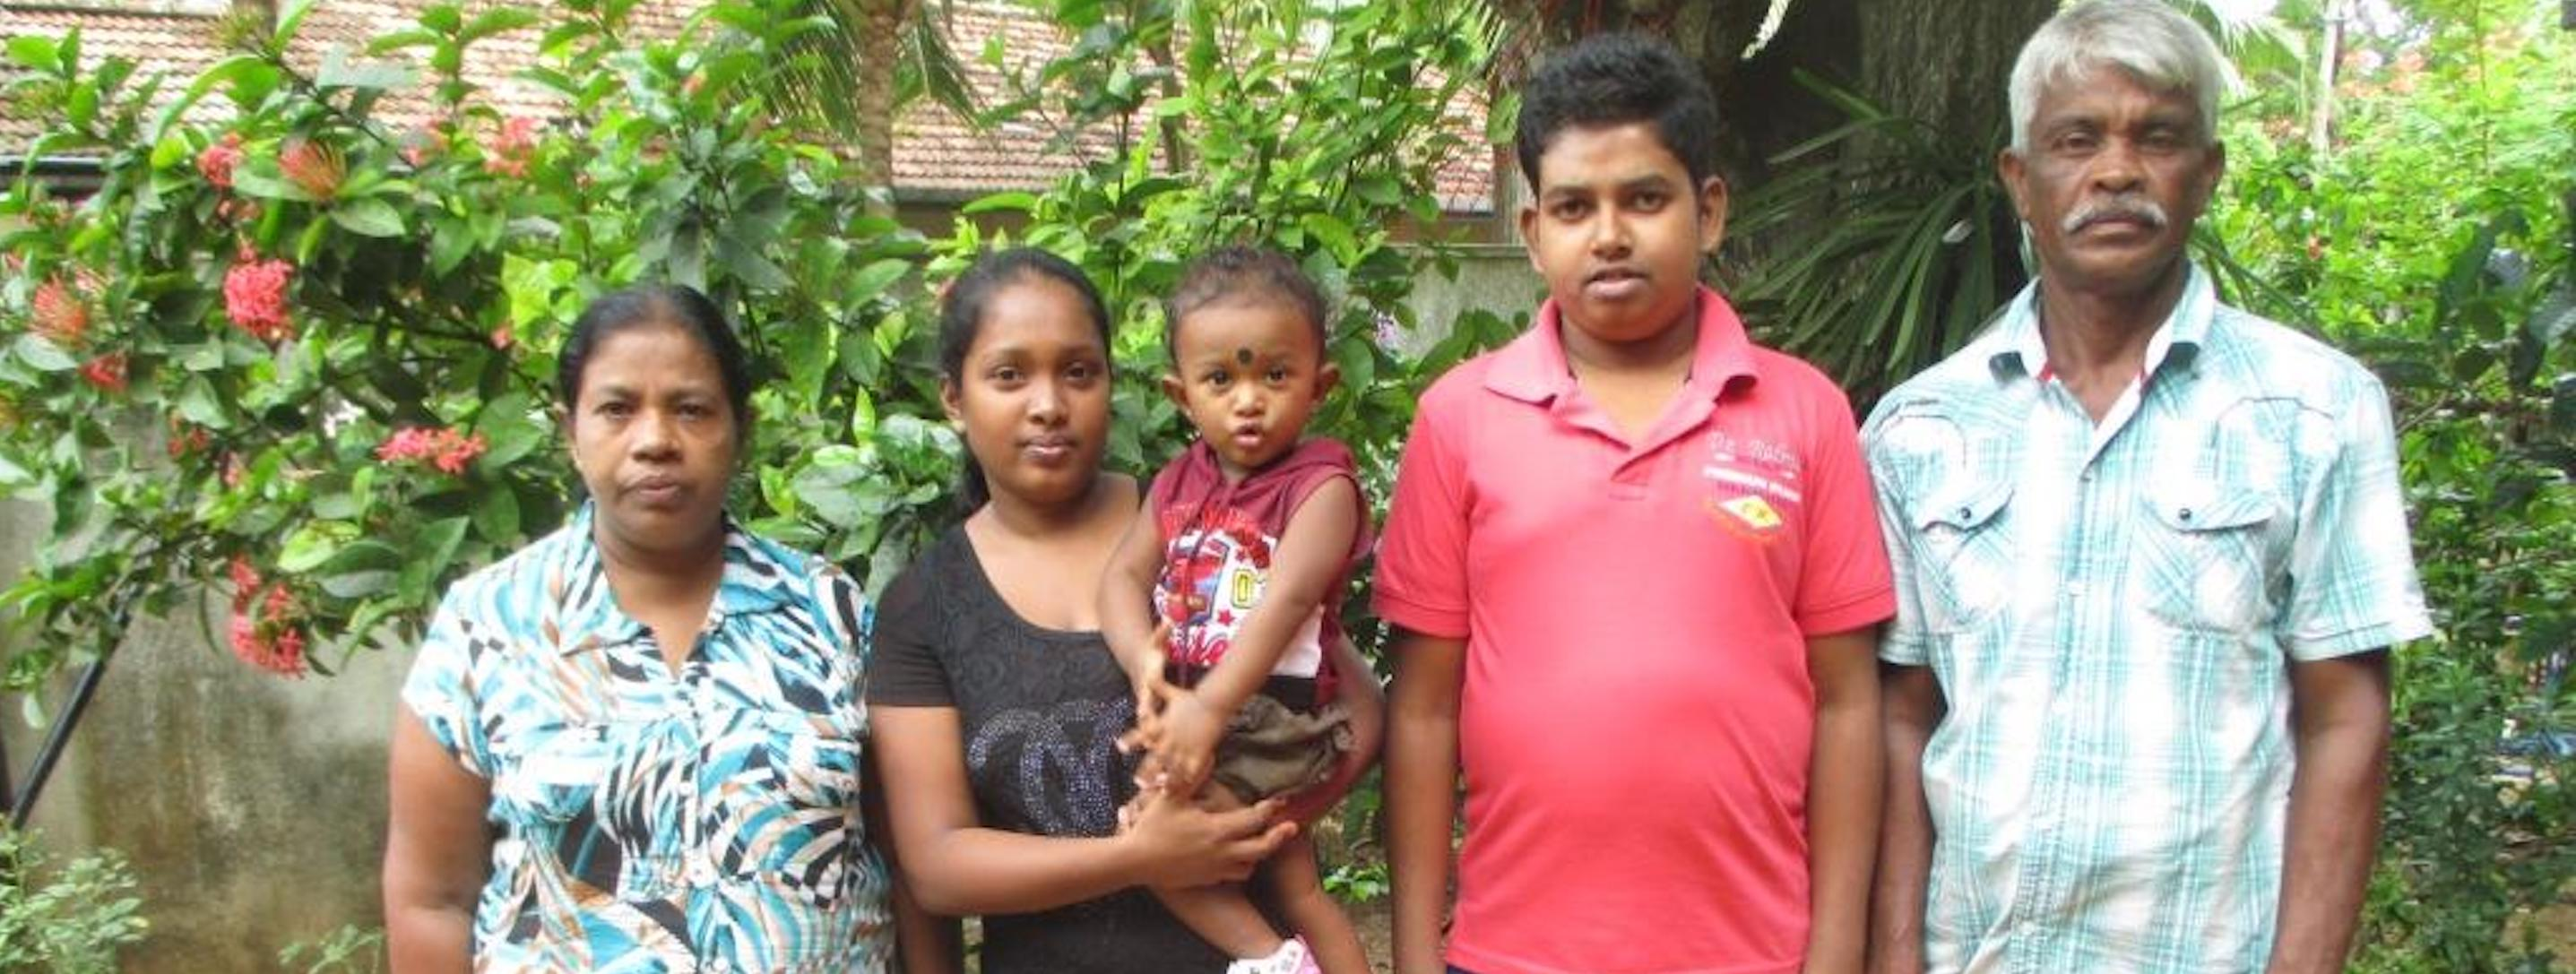 young sri lanka boy with mother in hospital